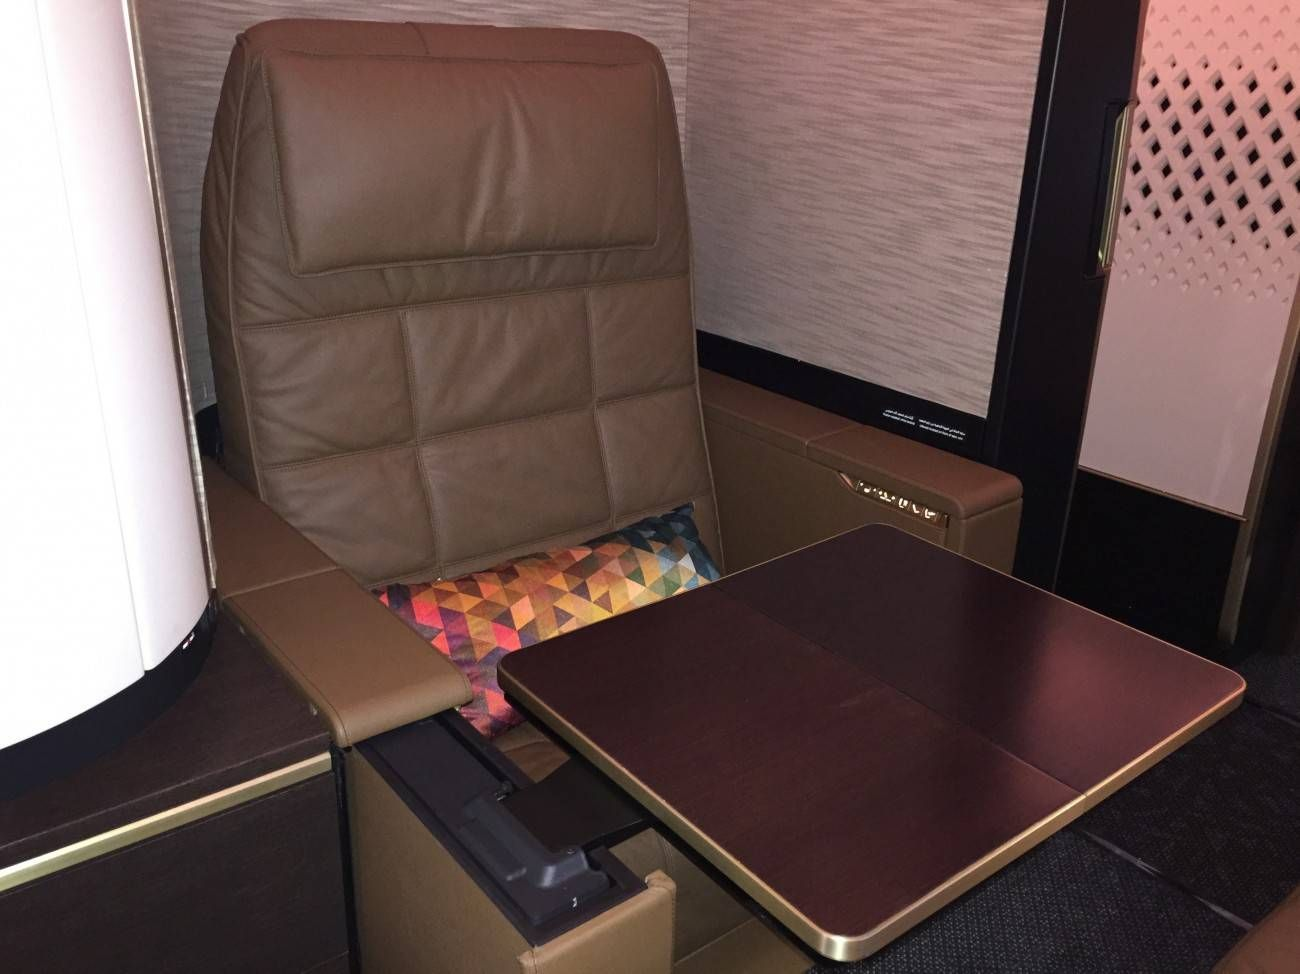 First Class Apartment A380 Etihad - PassageirodePrimeira32